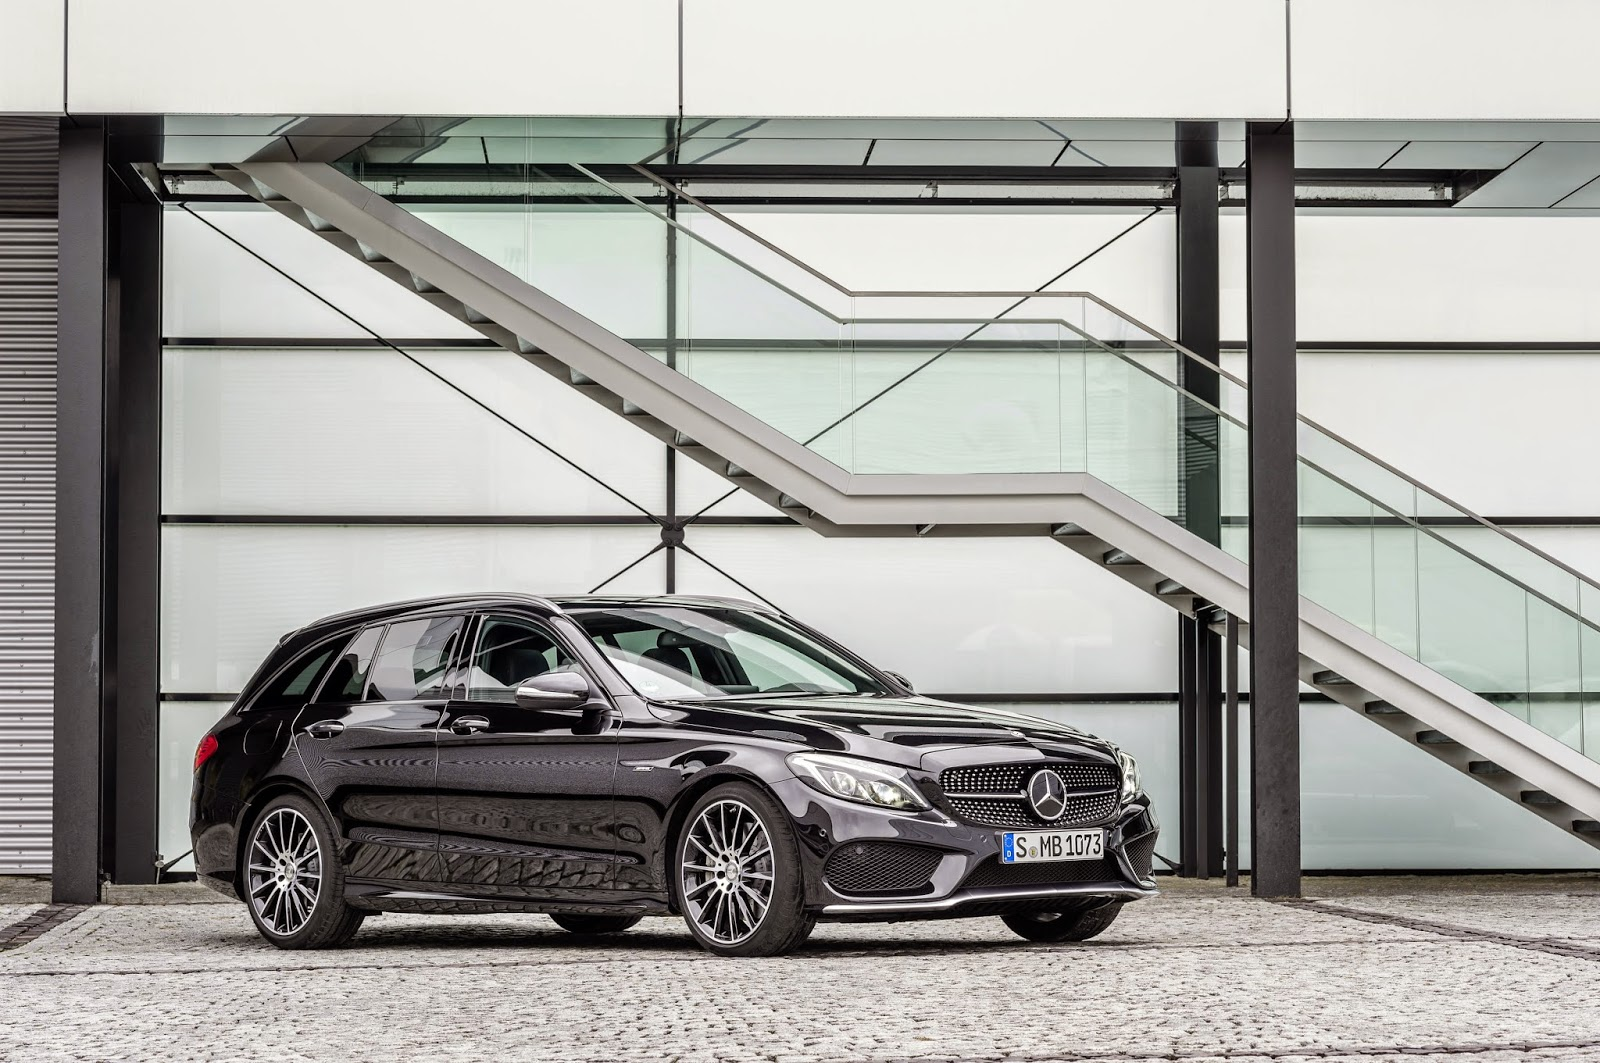 Mercedes Benz C450 AMG front angle